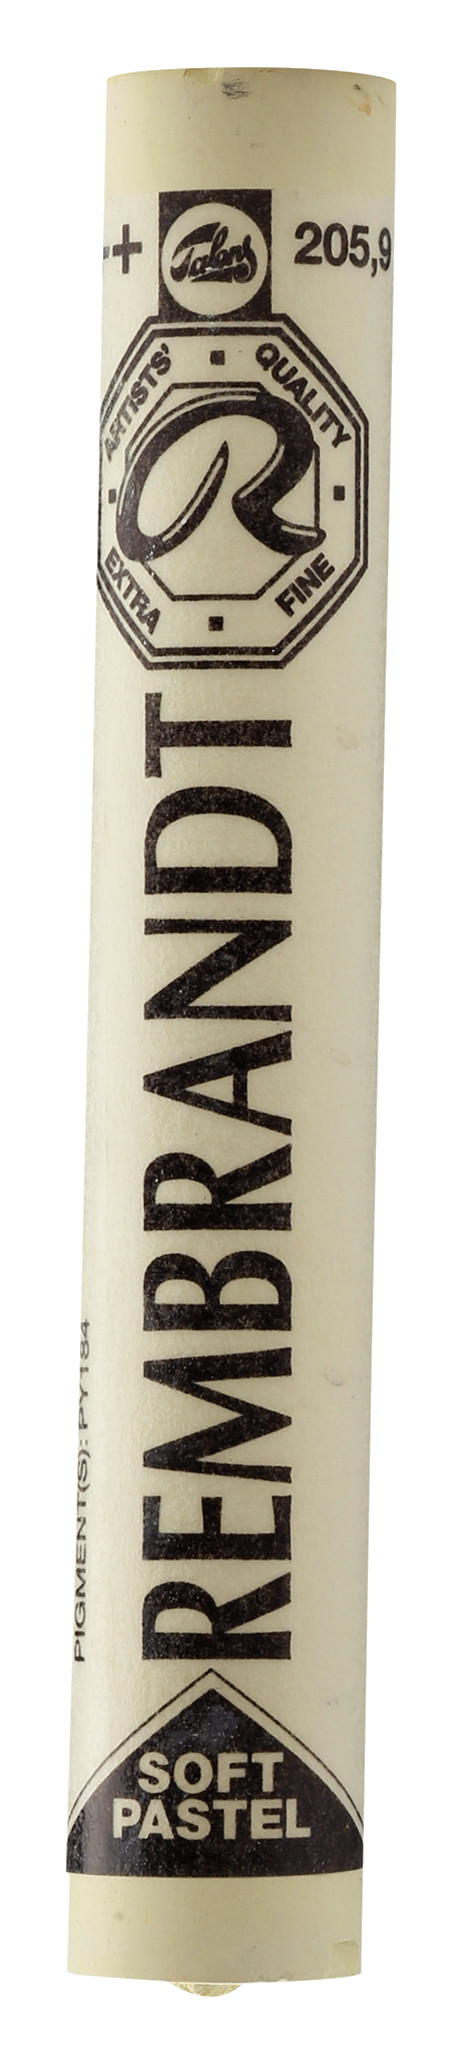 Rembrandt Soft Pastel Round Full Stick Lemon Yellow(9) (205.9)